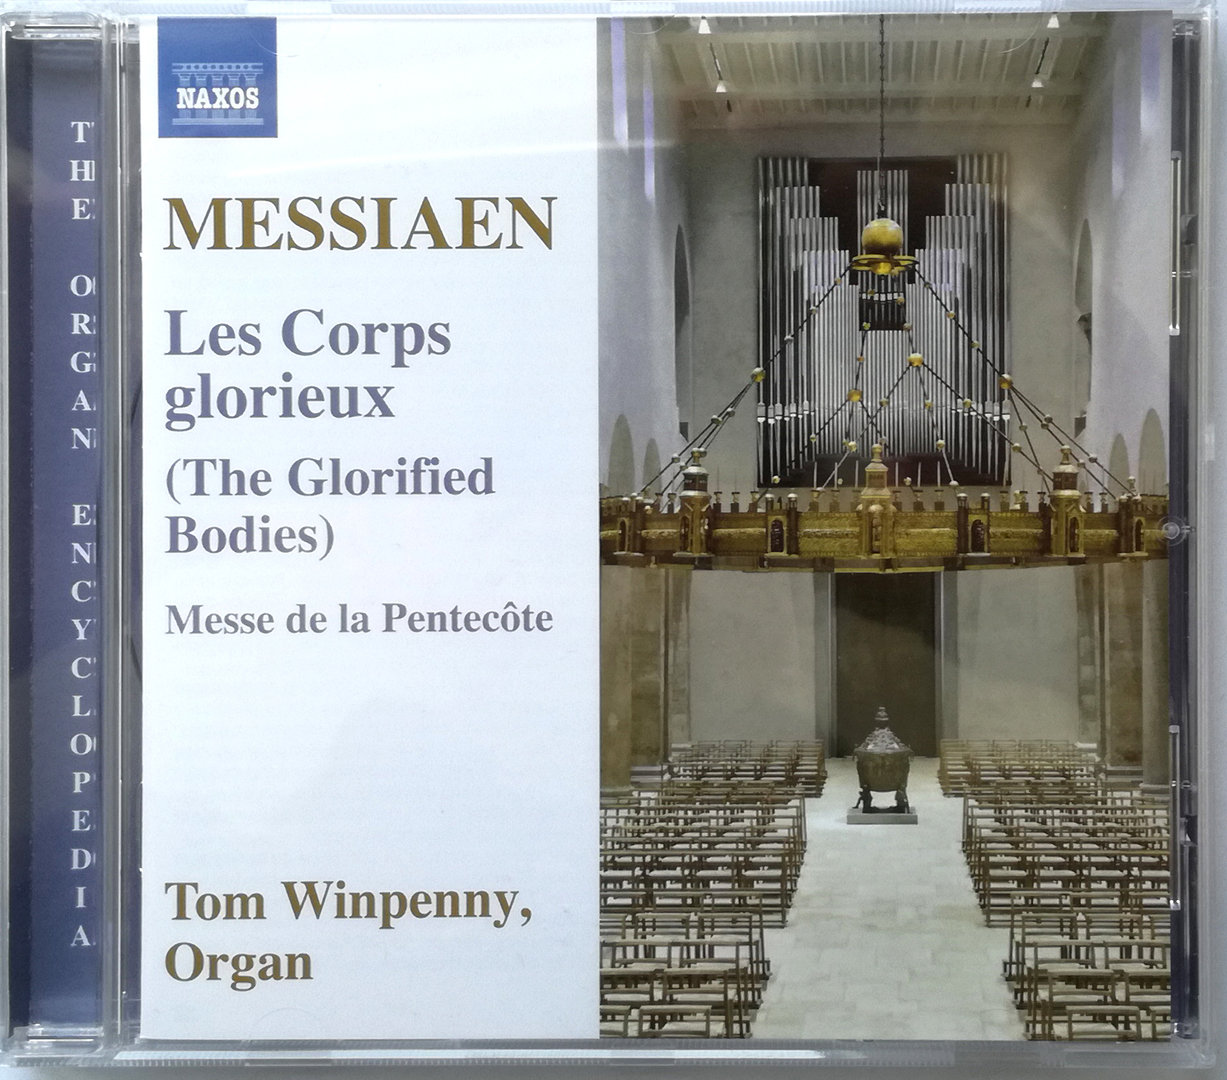 CD Messiaen